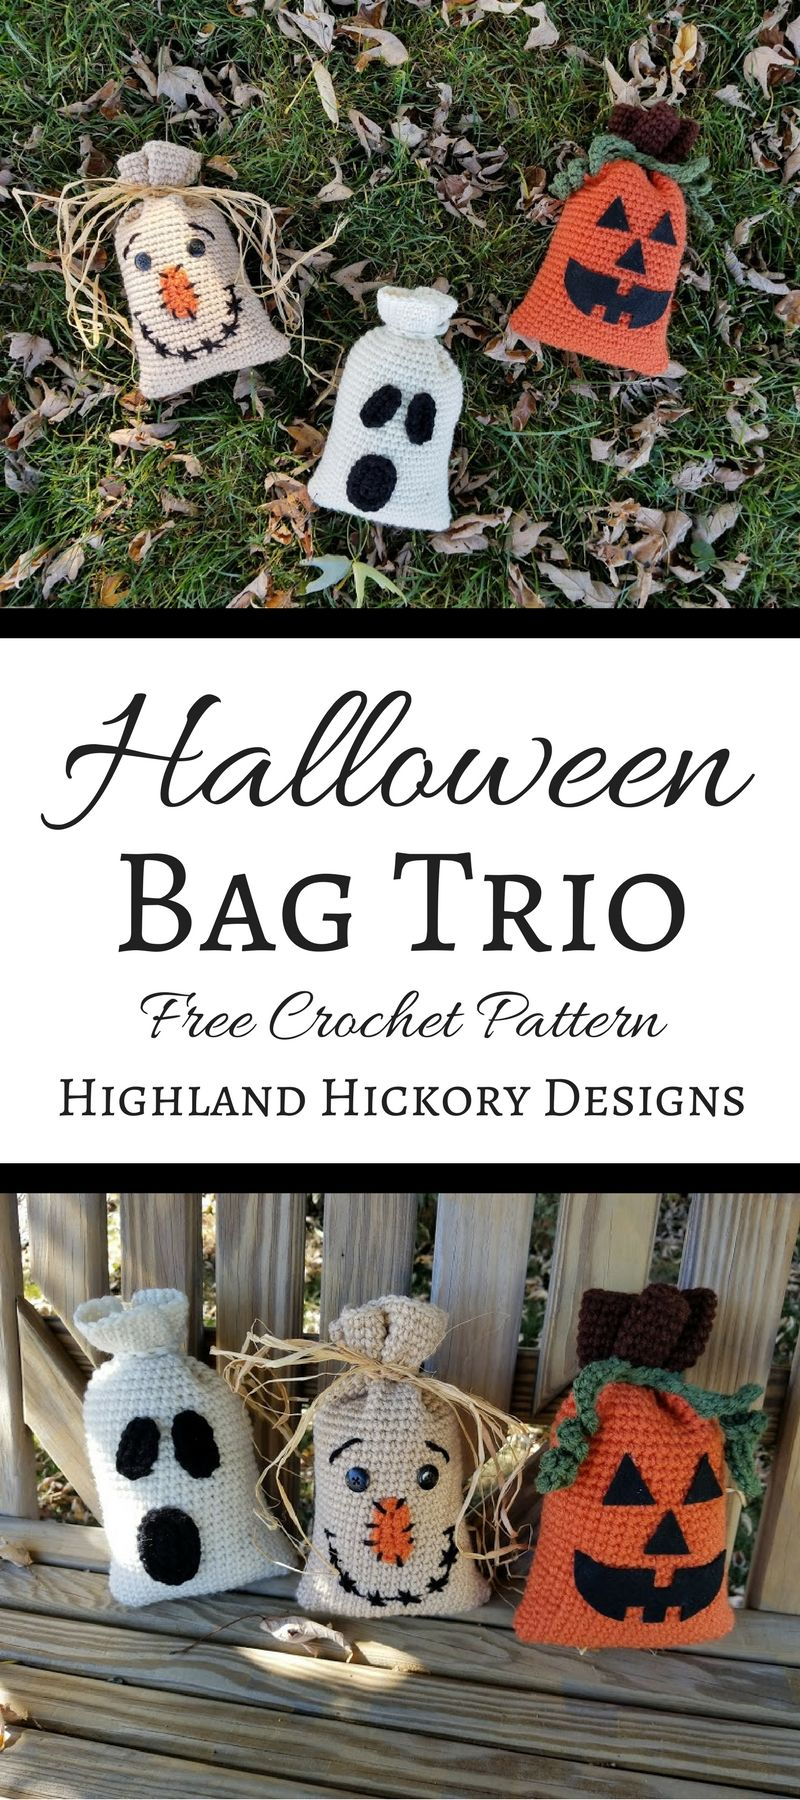 Halloween Bag Trio | Patrones amigurumi, Patrones y Ganchillo